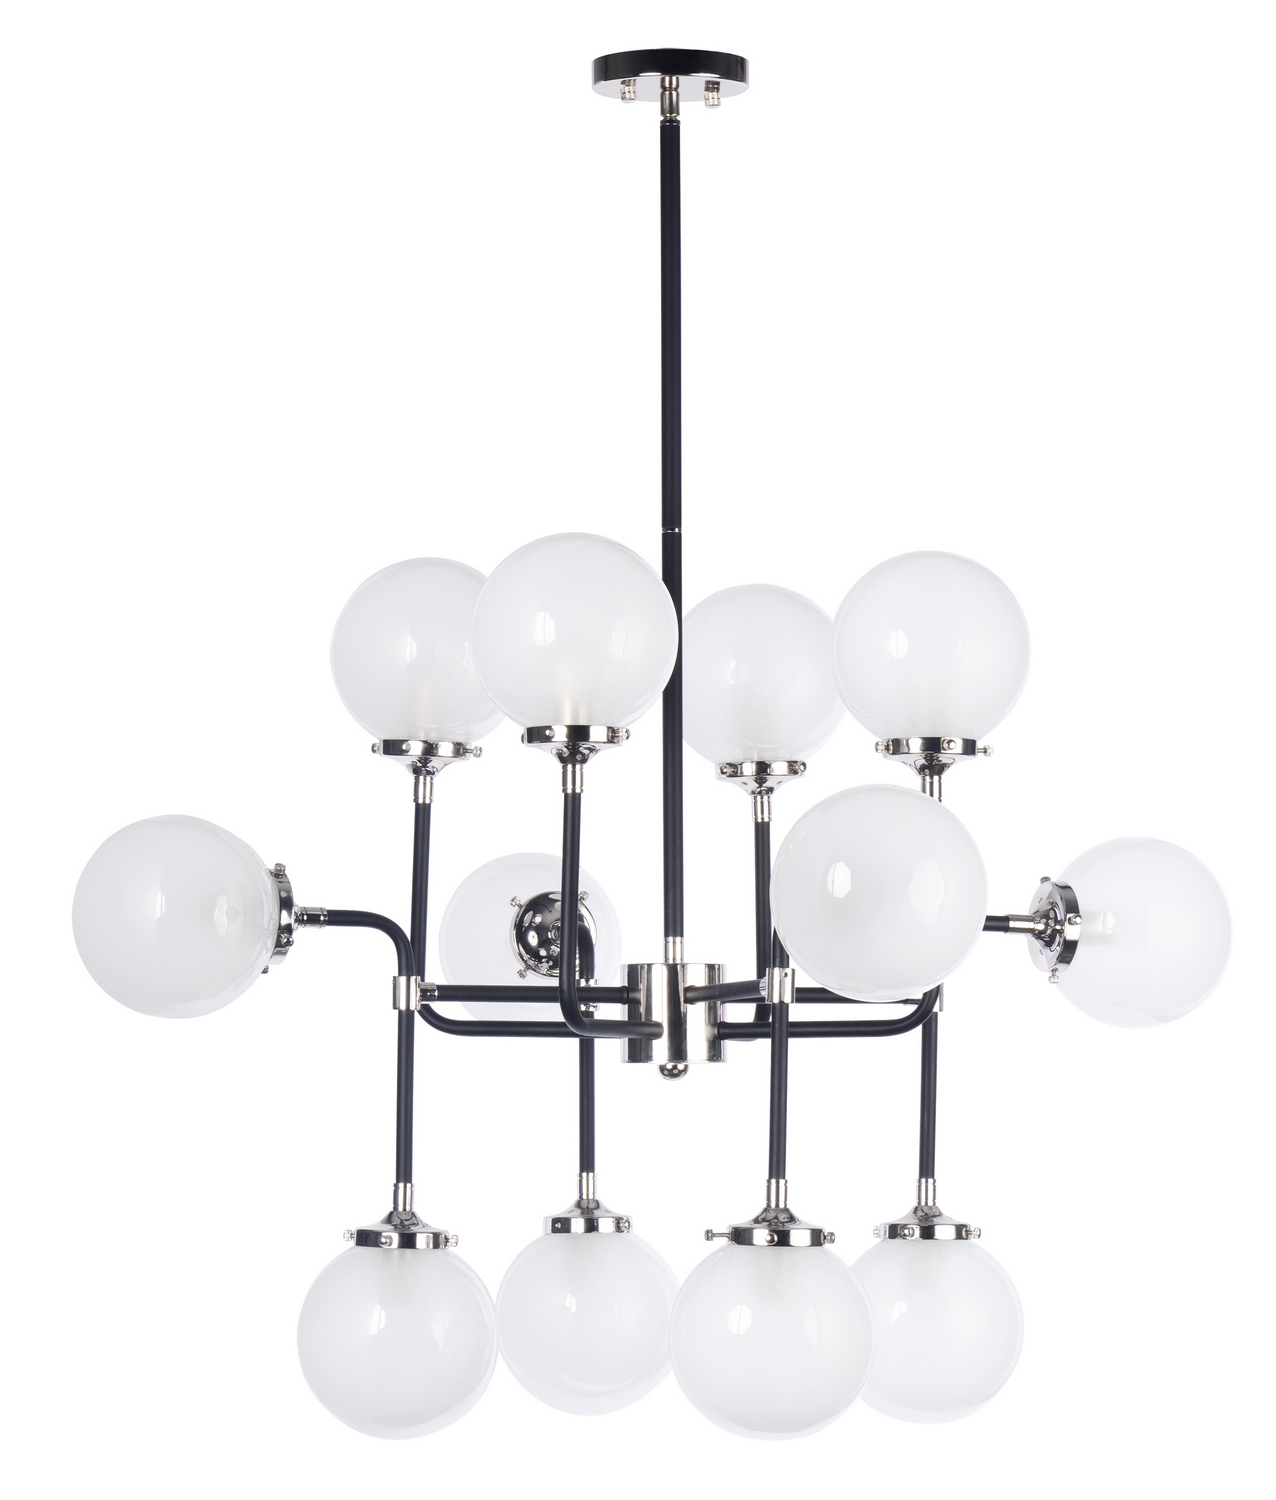 12 Light Pendant from the Atom collection by Maxim 24727WTBKPN